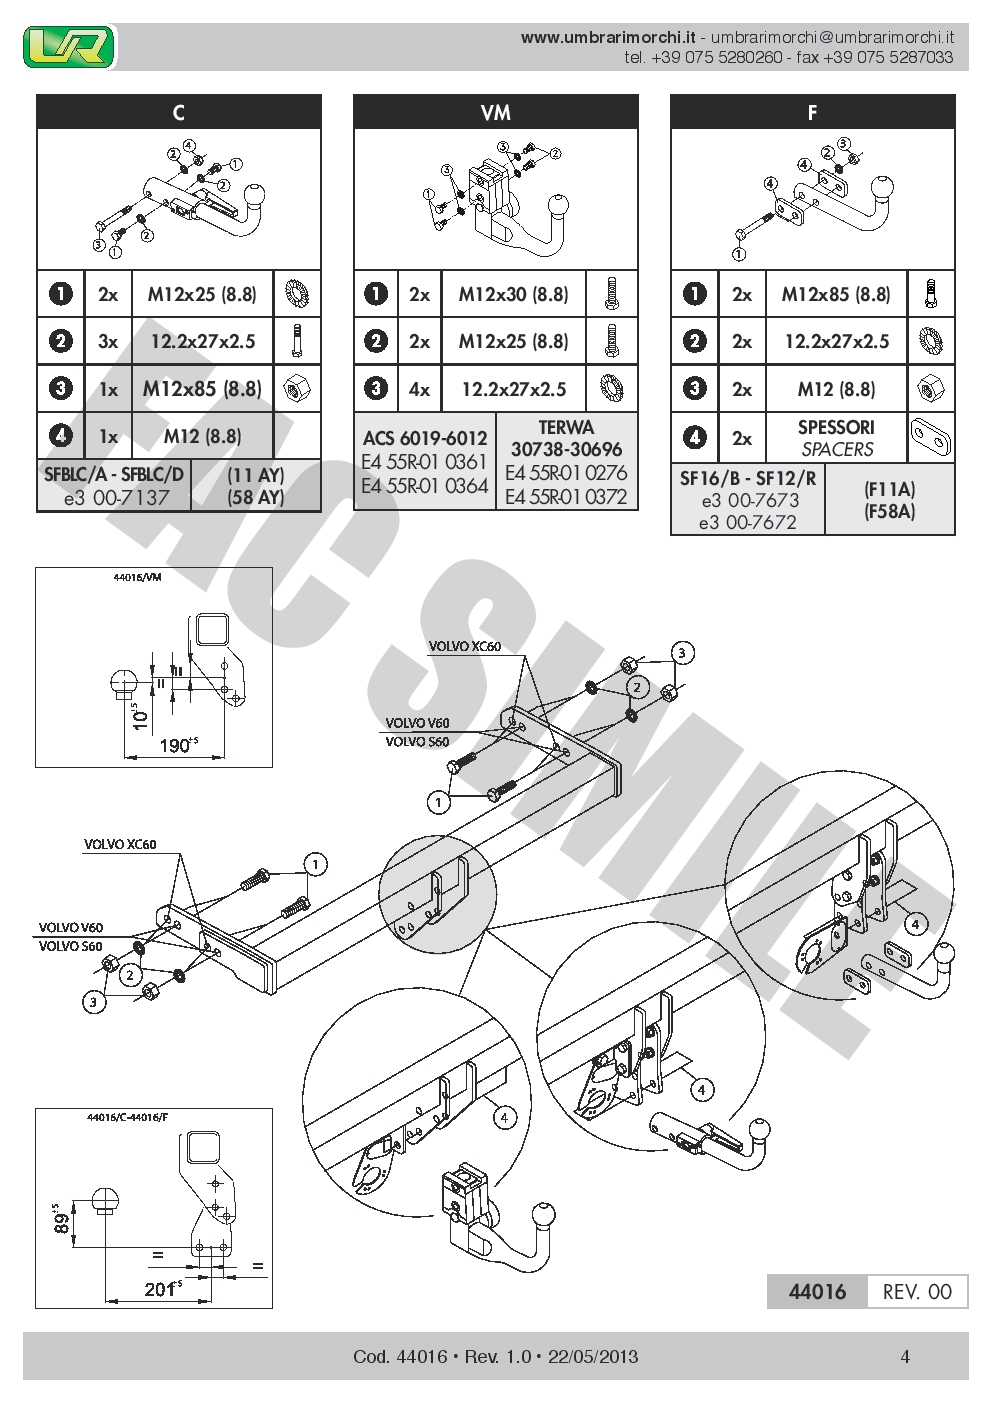 Detachable Towbar 7pin Wiring for Volvo XC60 SUV 2-4WD 12-2014 4401_H2 Tow  Bars Vehicle Parts & Accessories | Volvo Towbar Wiring Diagram |  | Pashun Consulting Ltd.